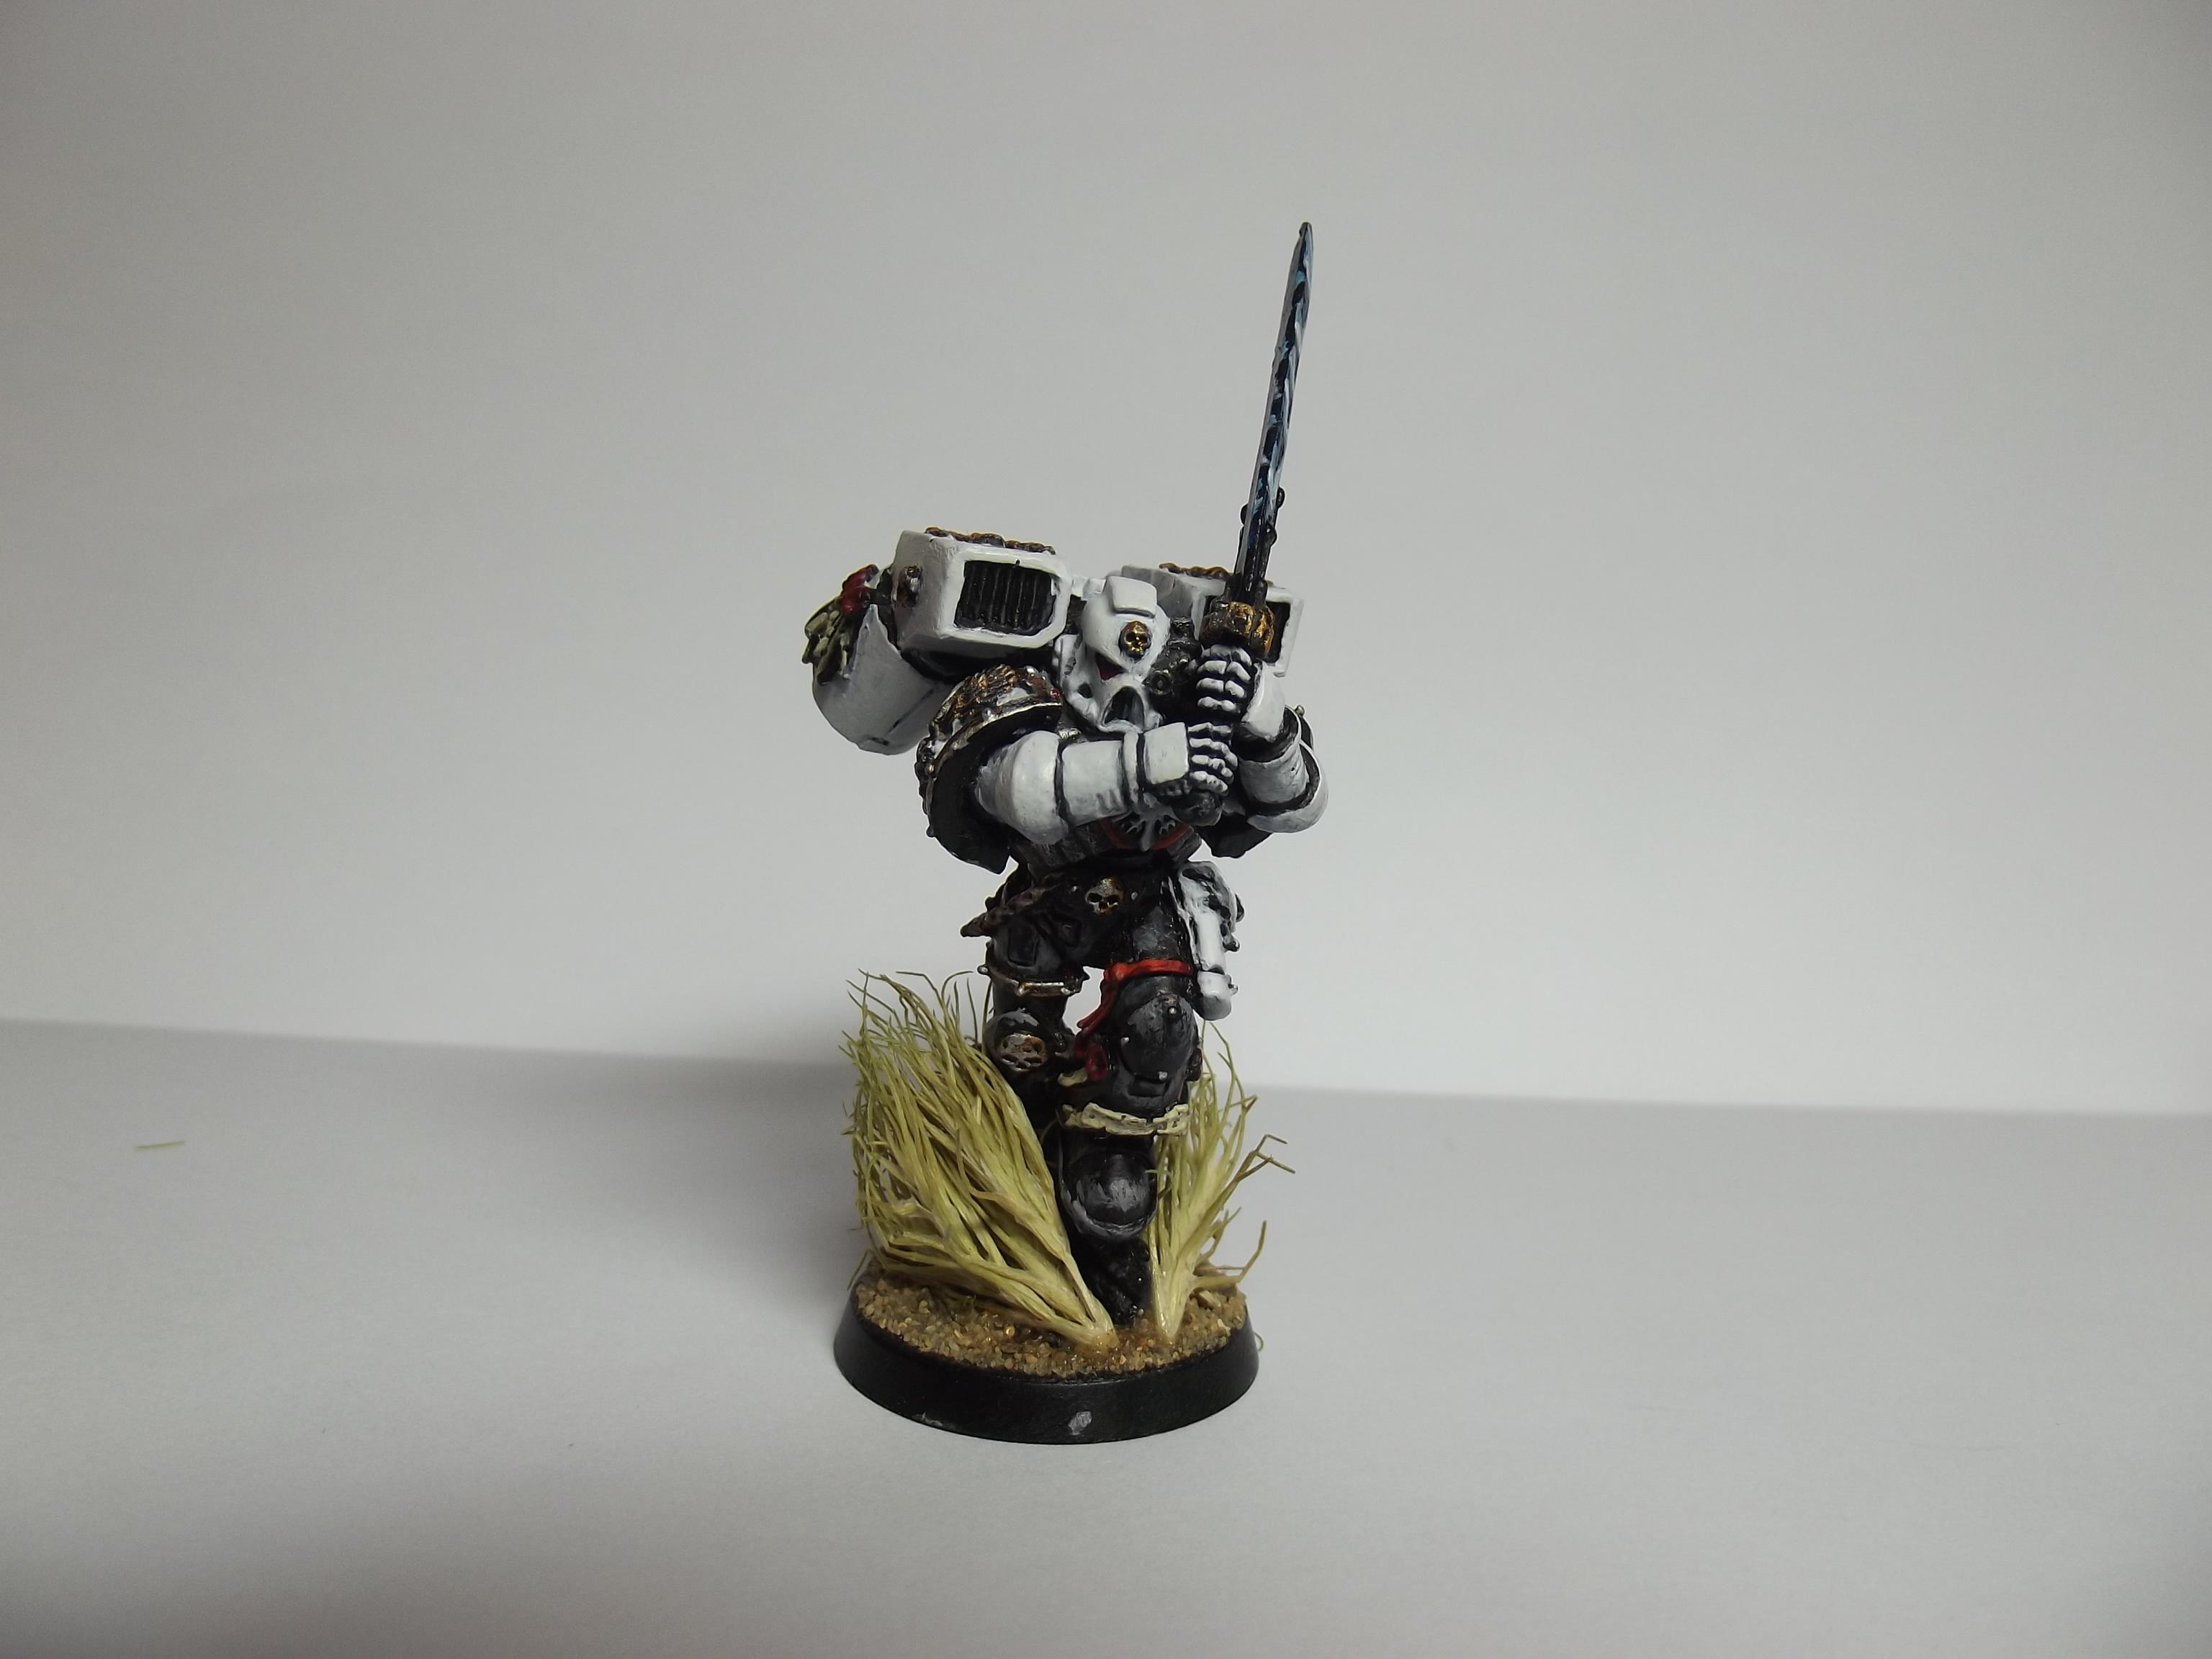 Raven Guard, Space Marines Warhammer 40k, Vanguard Veterans, Warhammer 40,000